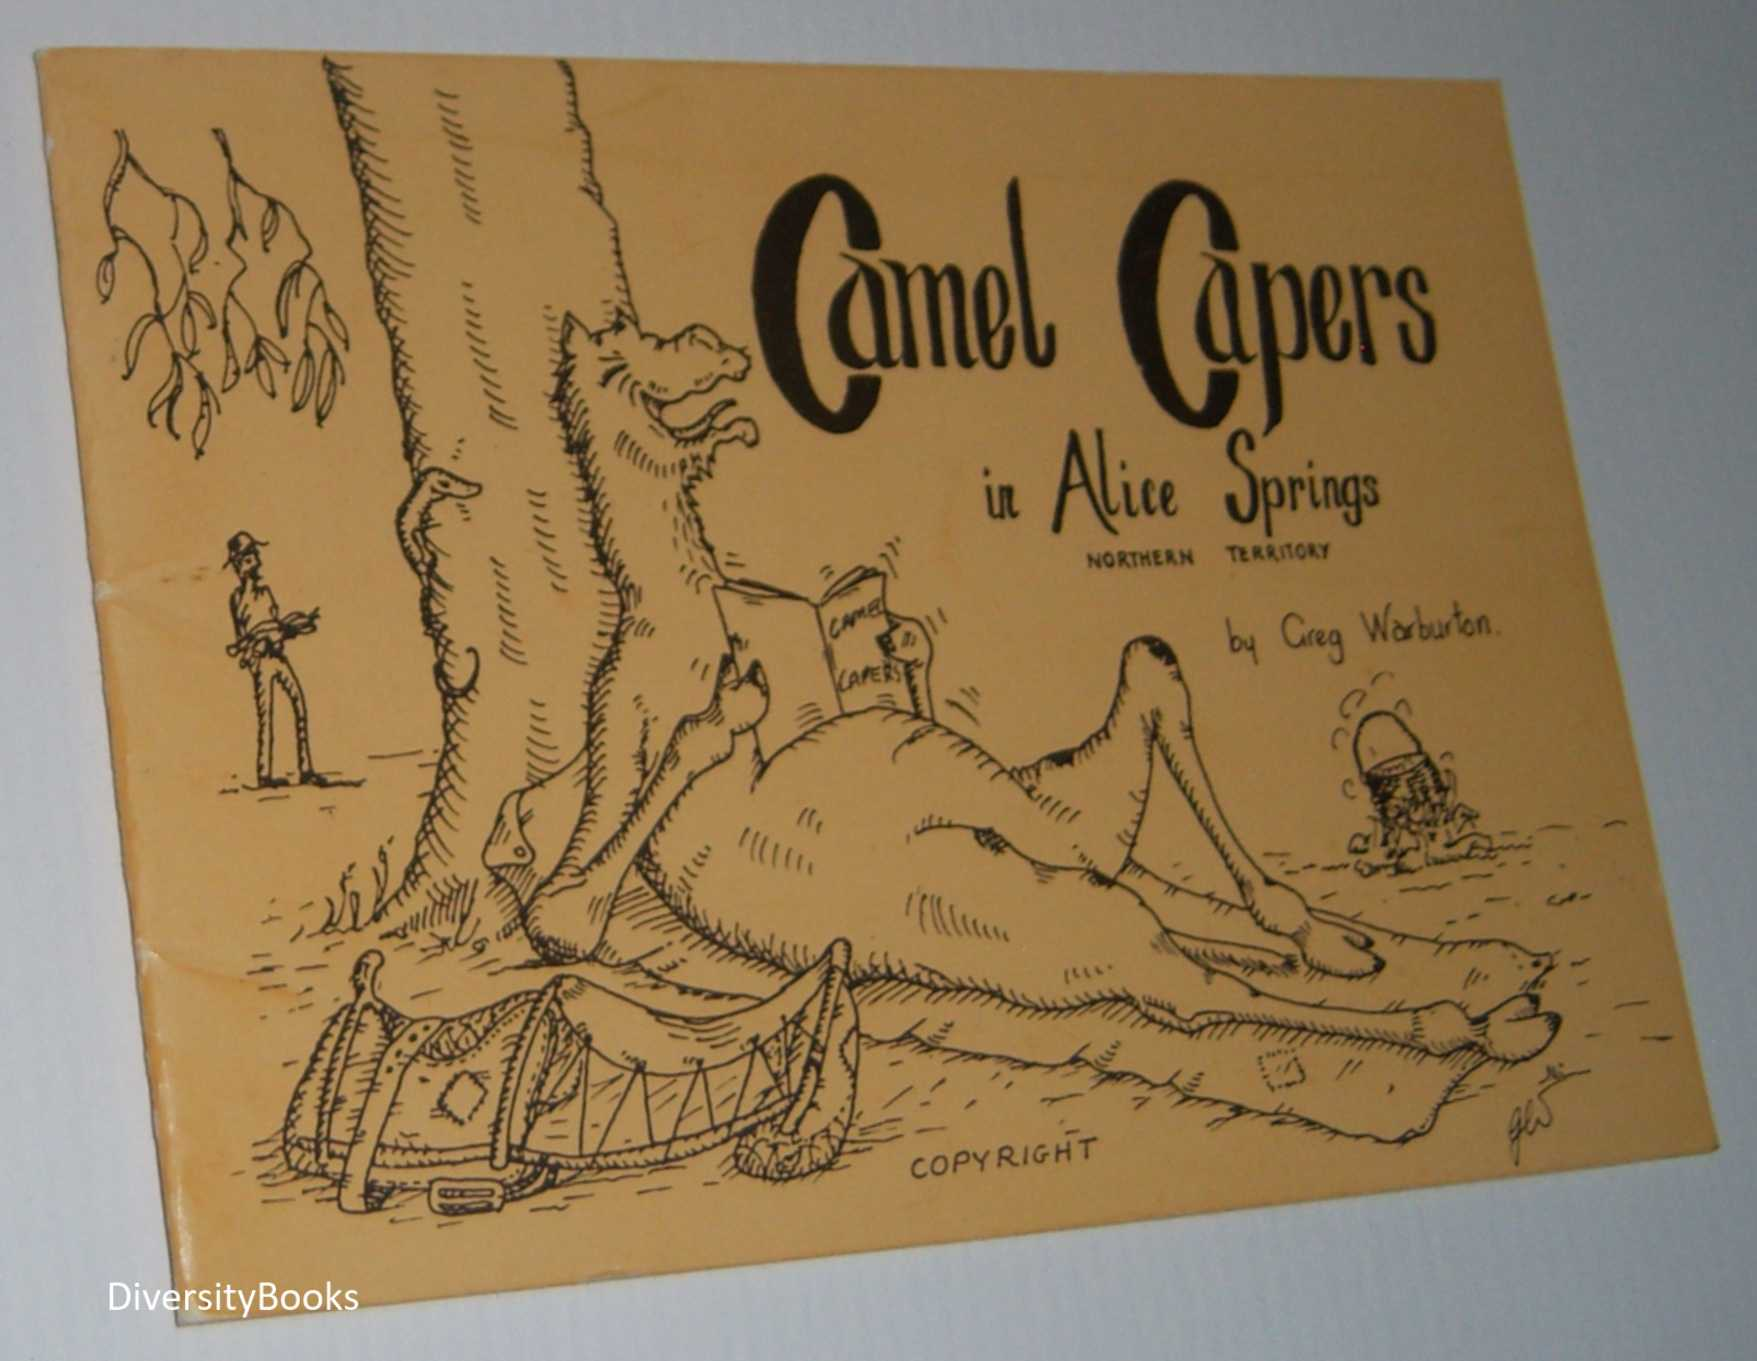 Image for CAMEL CAPERS: A Humorous Tribute to the Camels of Central Australia  (Camel Capers in Alice Springs, Northern Territory